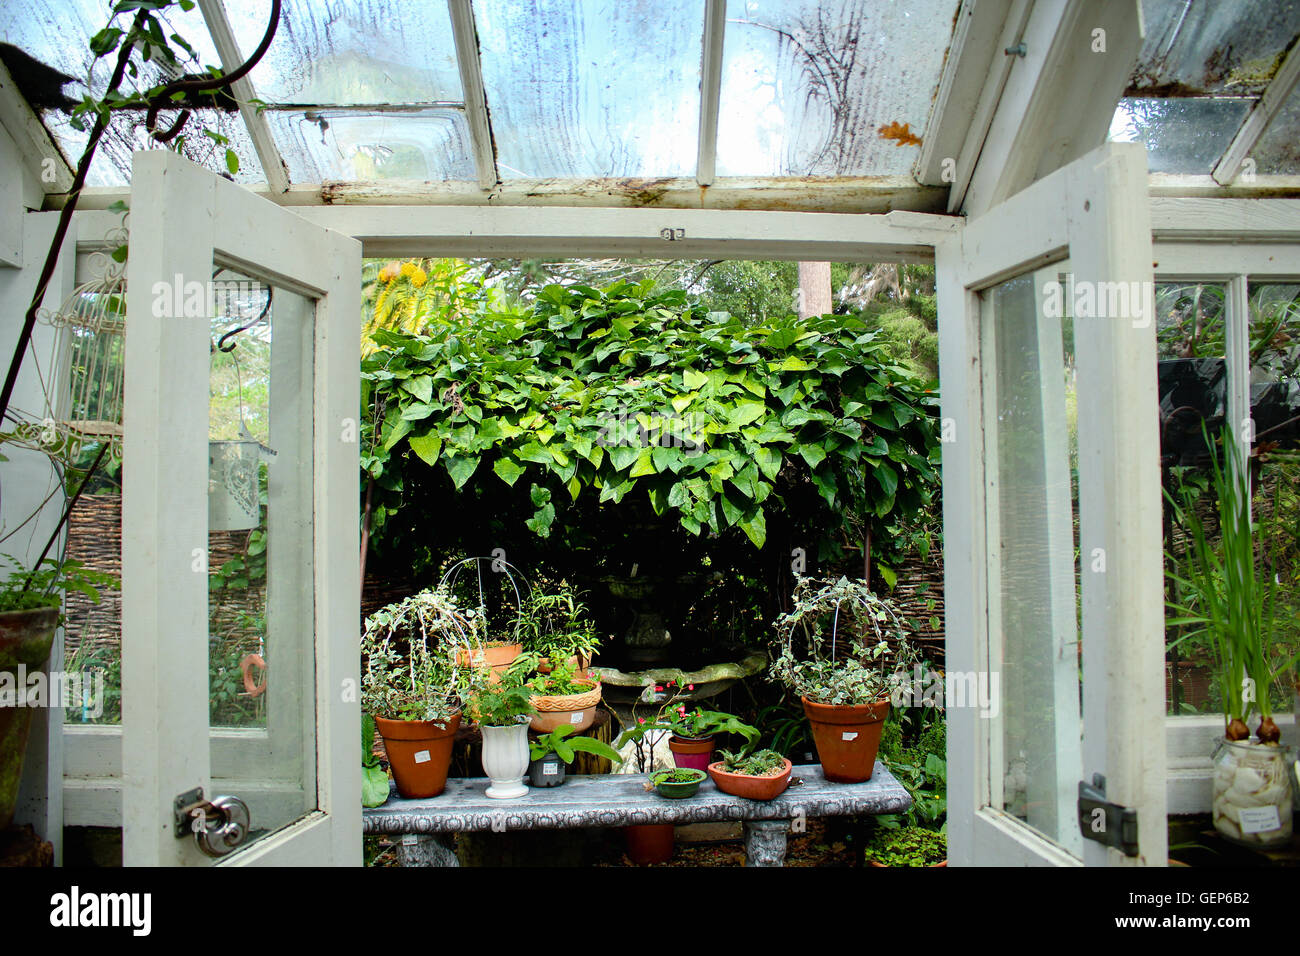 From the inside of the greenhouse, looking out. - Stock Image